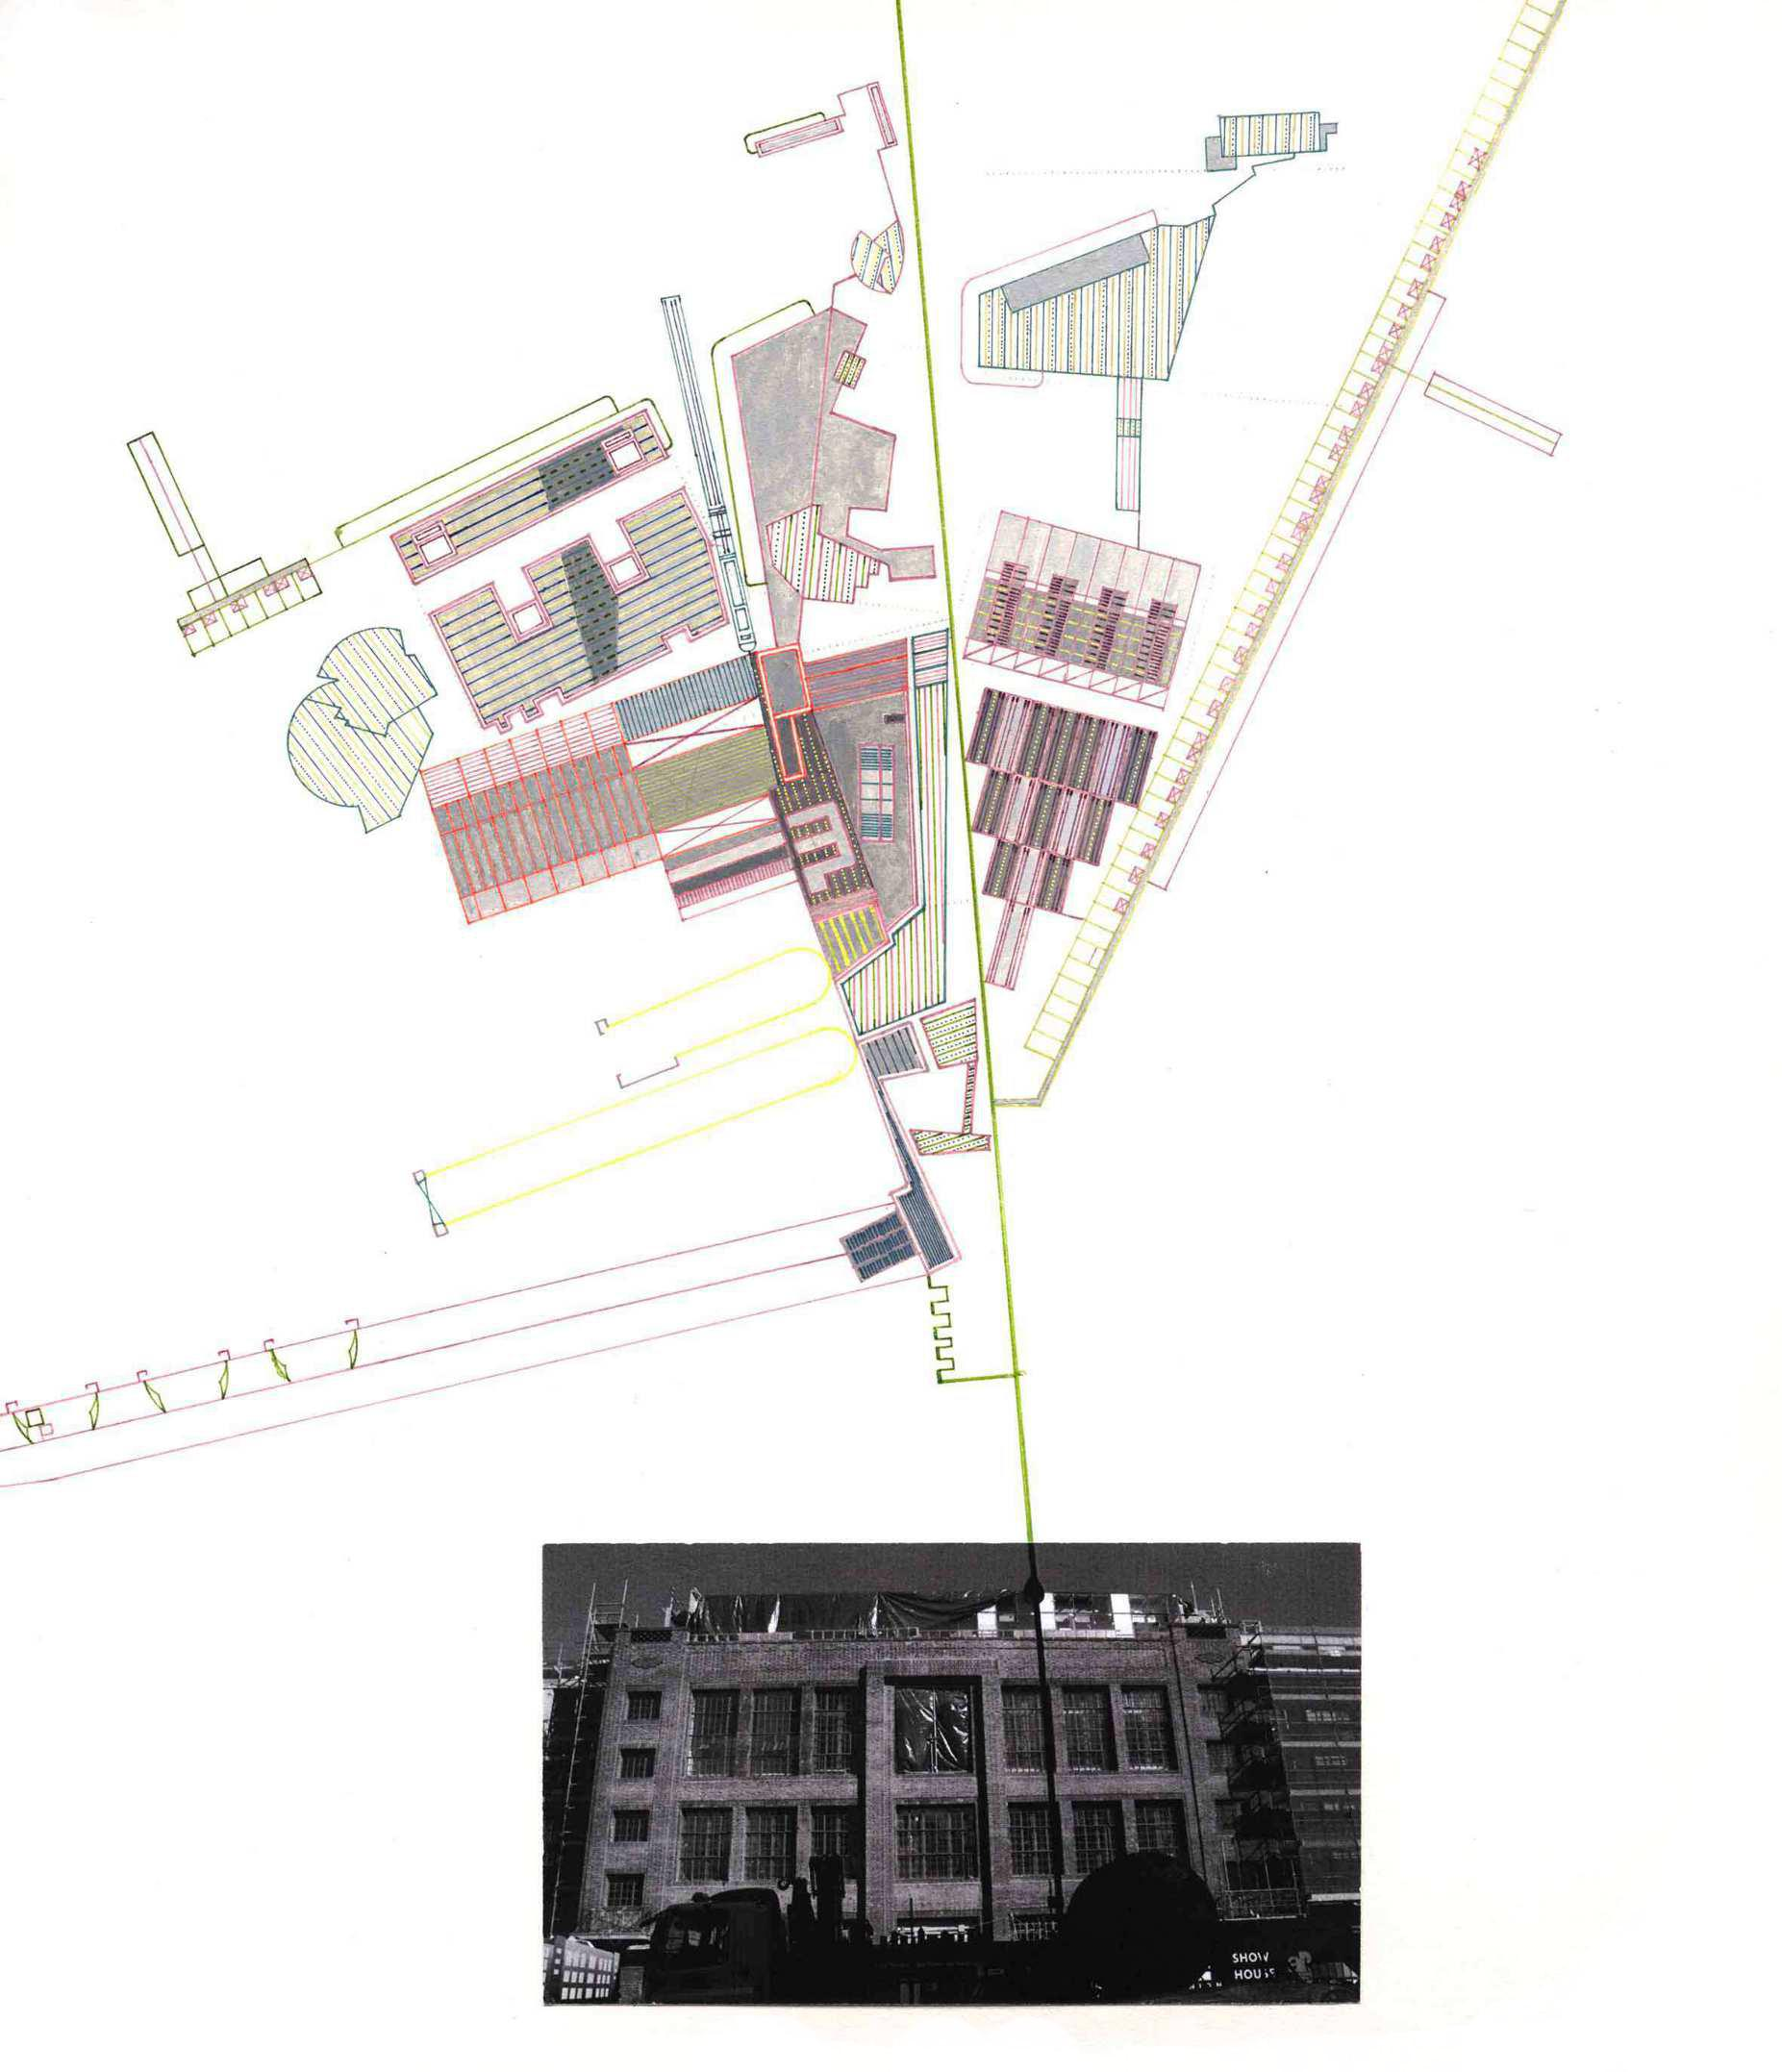 Plan for the Site